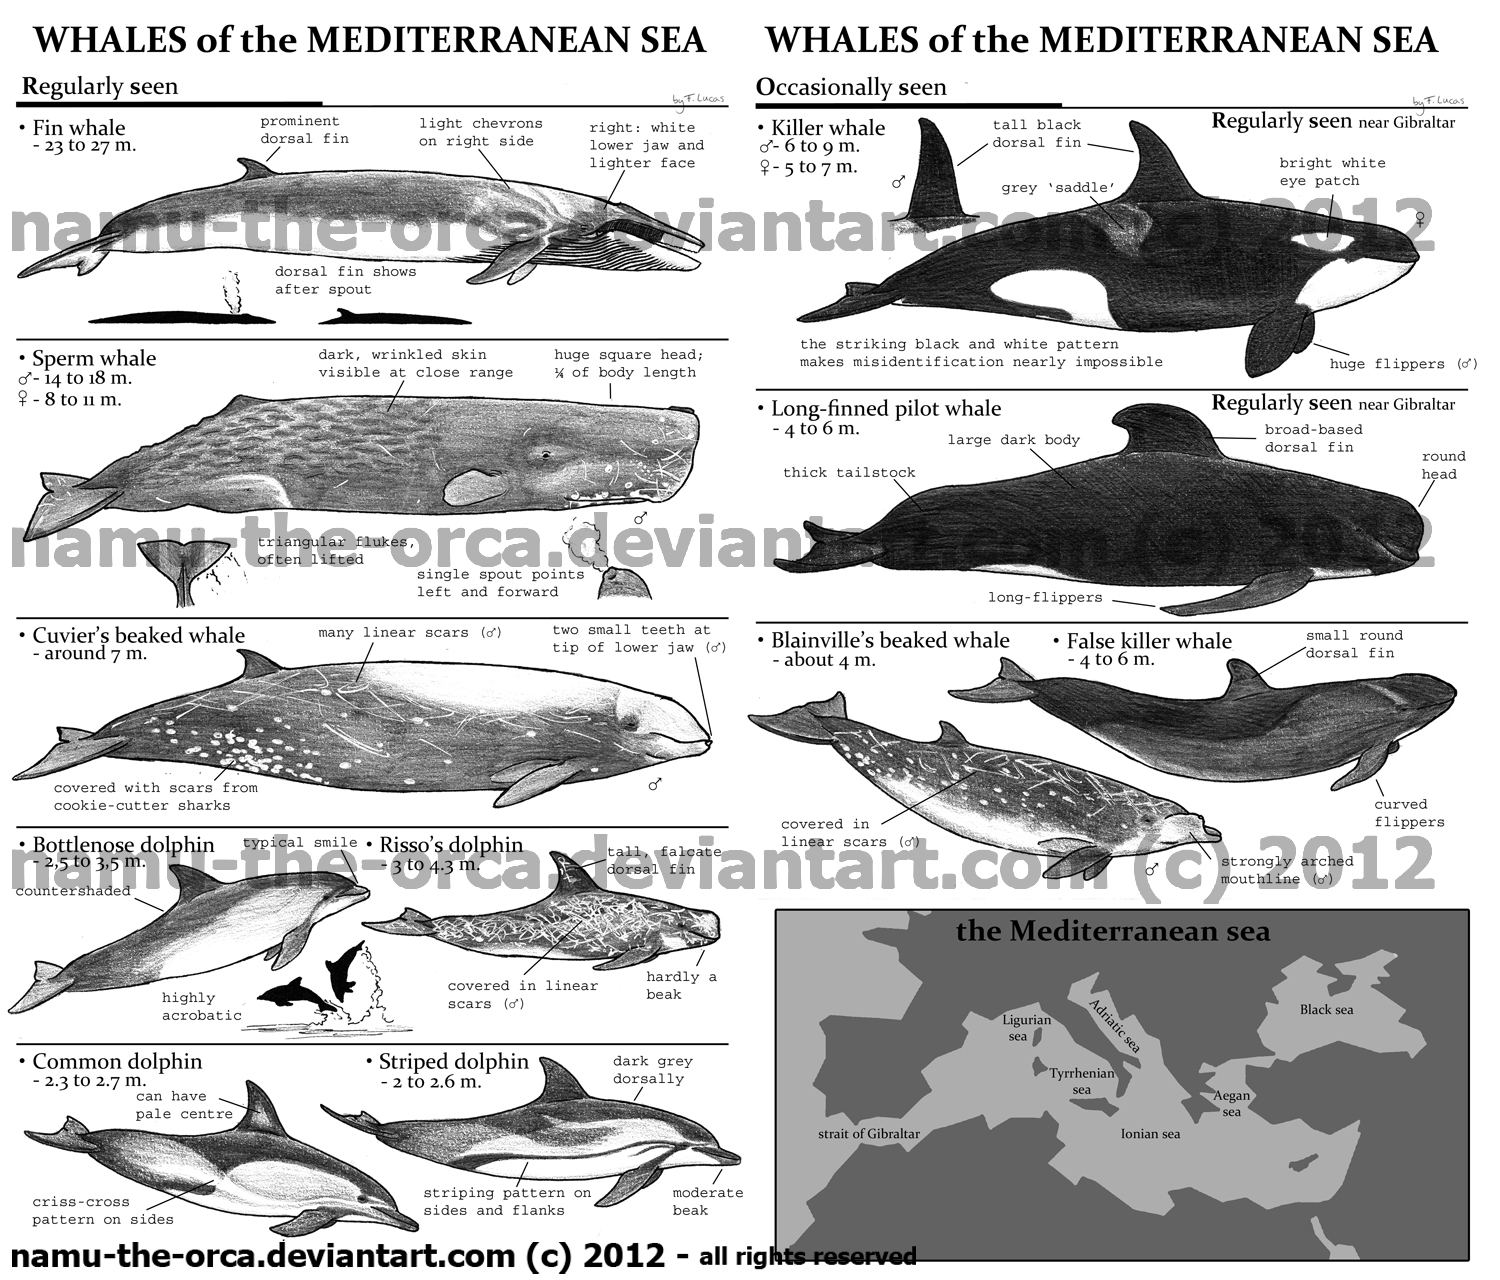 ID guide to mediterranean whales by namu-the-orca on DeviantArt